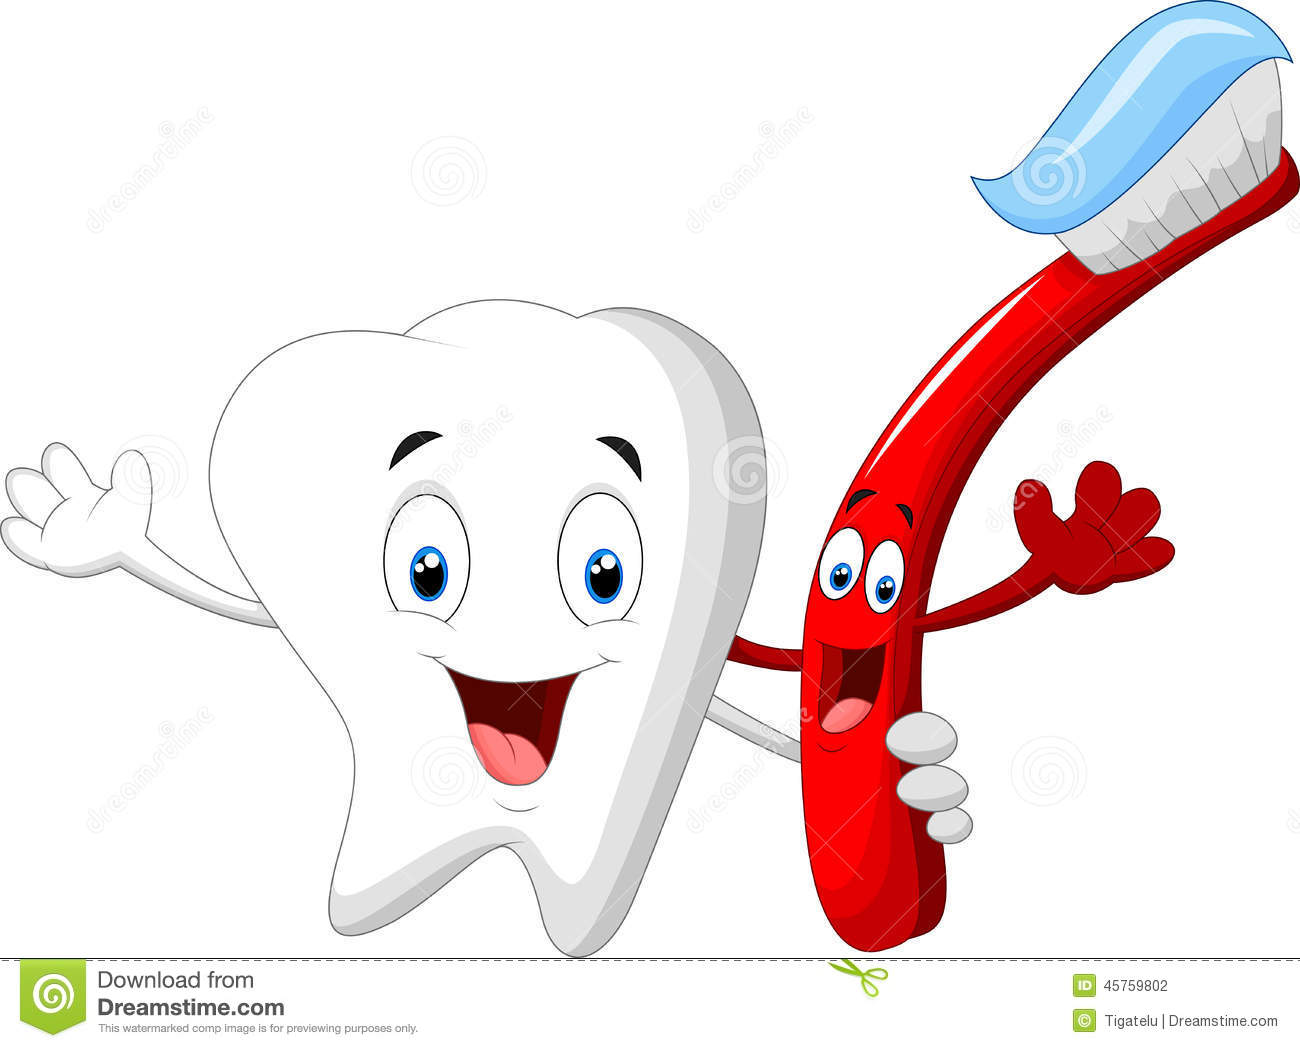 1 Toothed Cartoon Characters : Dental tooth and toothbrush cartoon character stock vector